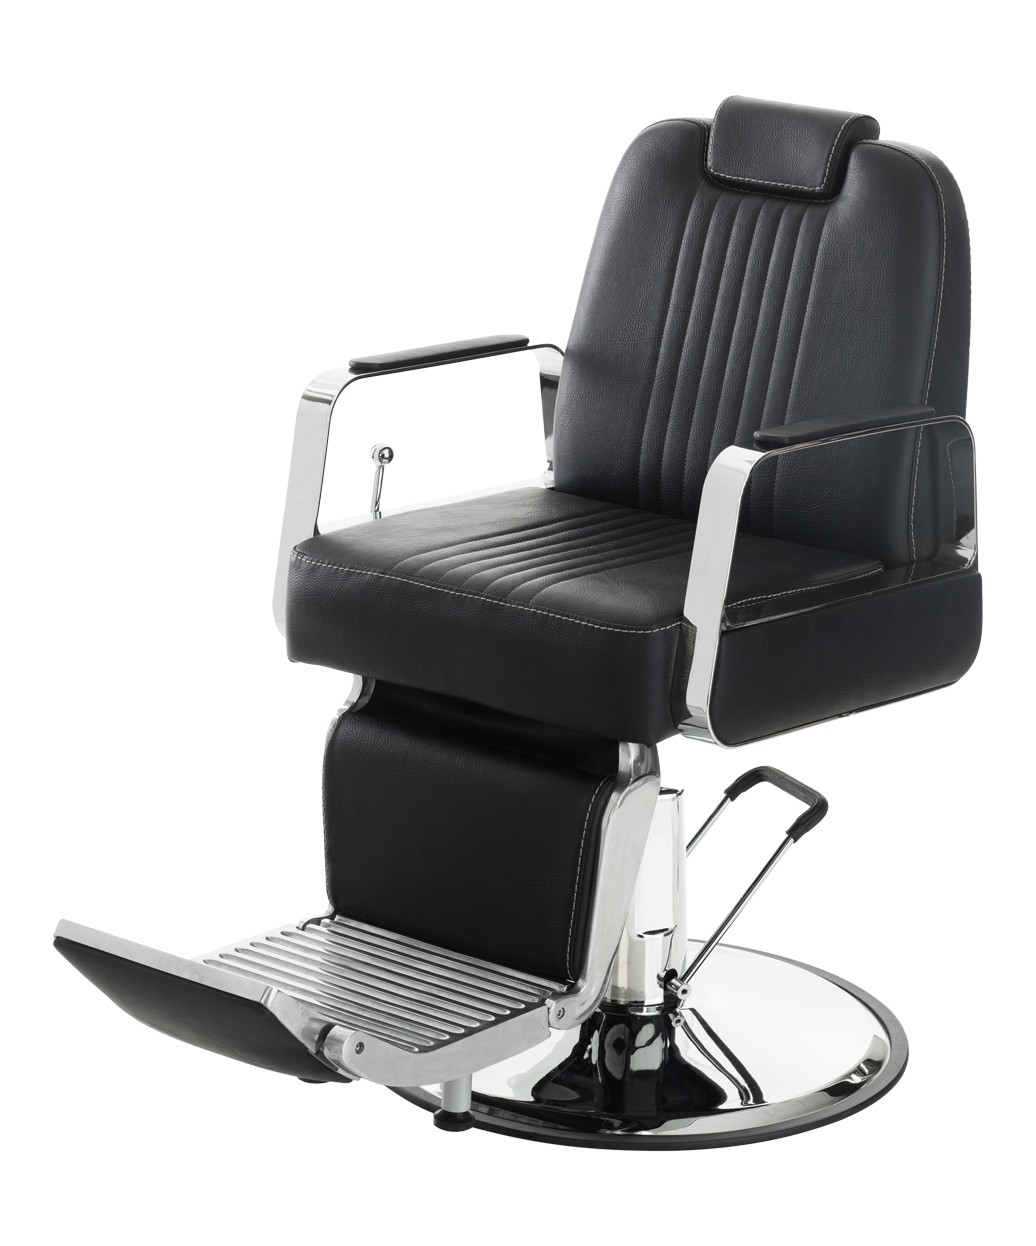 Lenox Professional Barber Chair